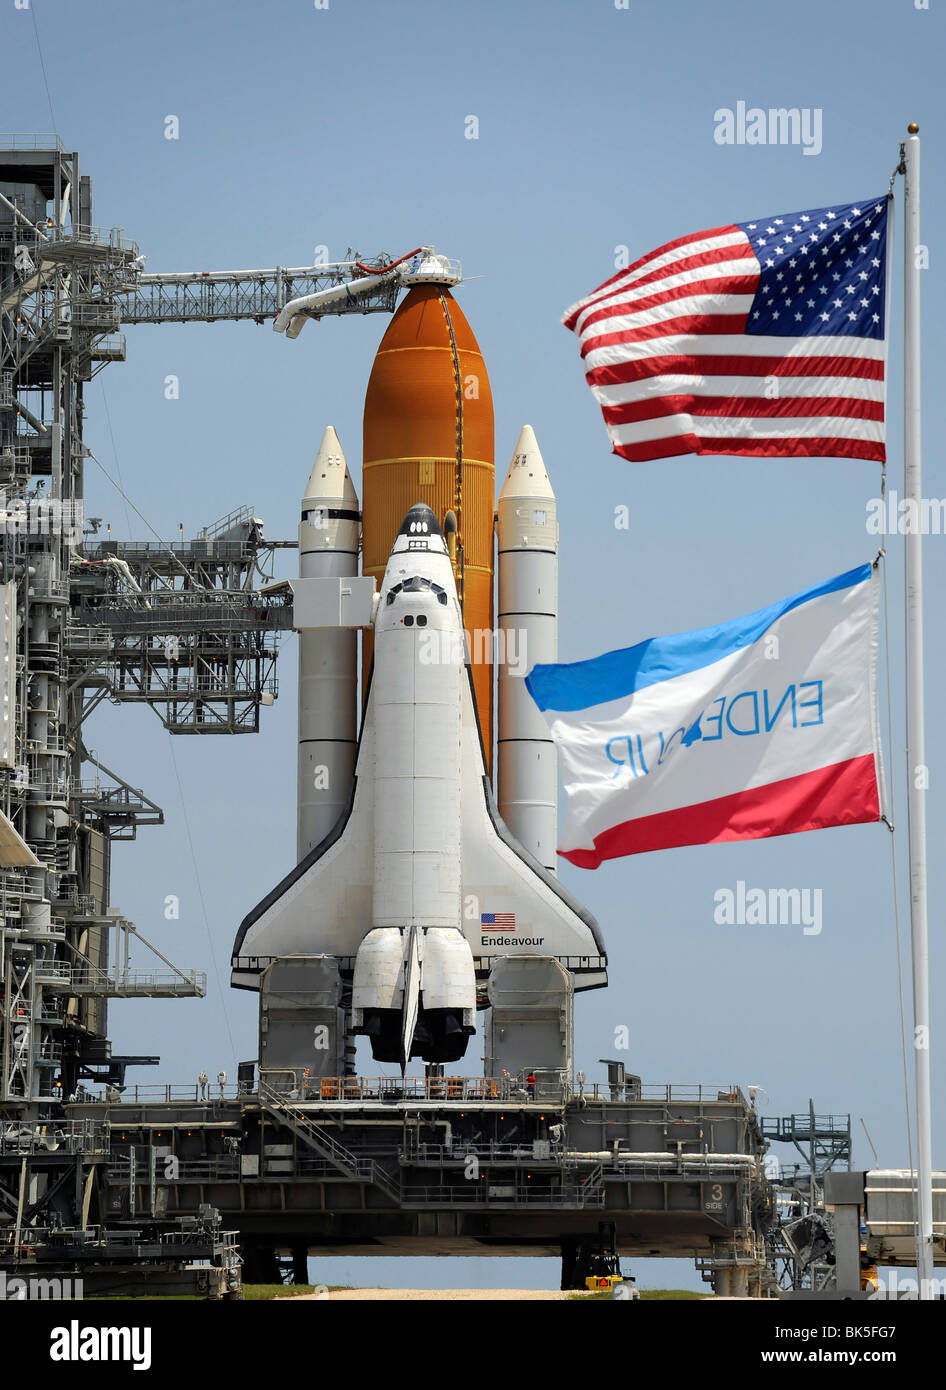 Space Shuttle Endeavour is in place to launch, Kennedy Space Center, Cape Canaveral, Florida, USA - Stock Image